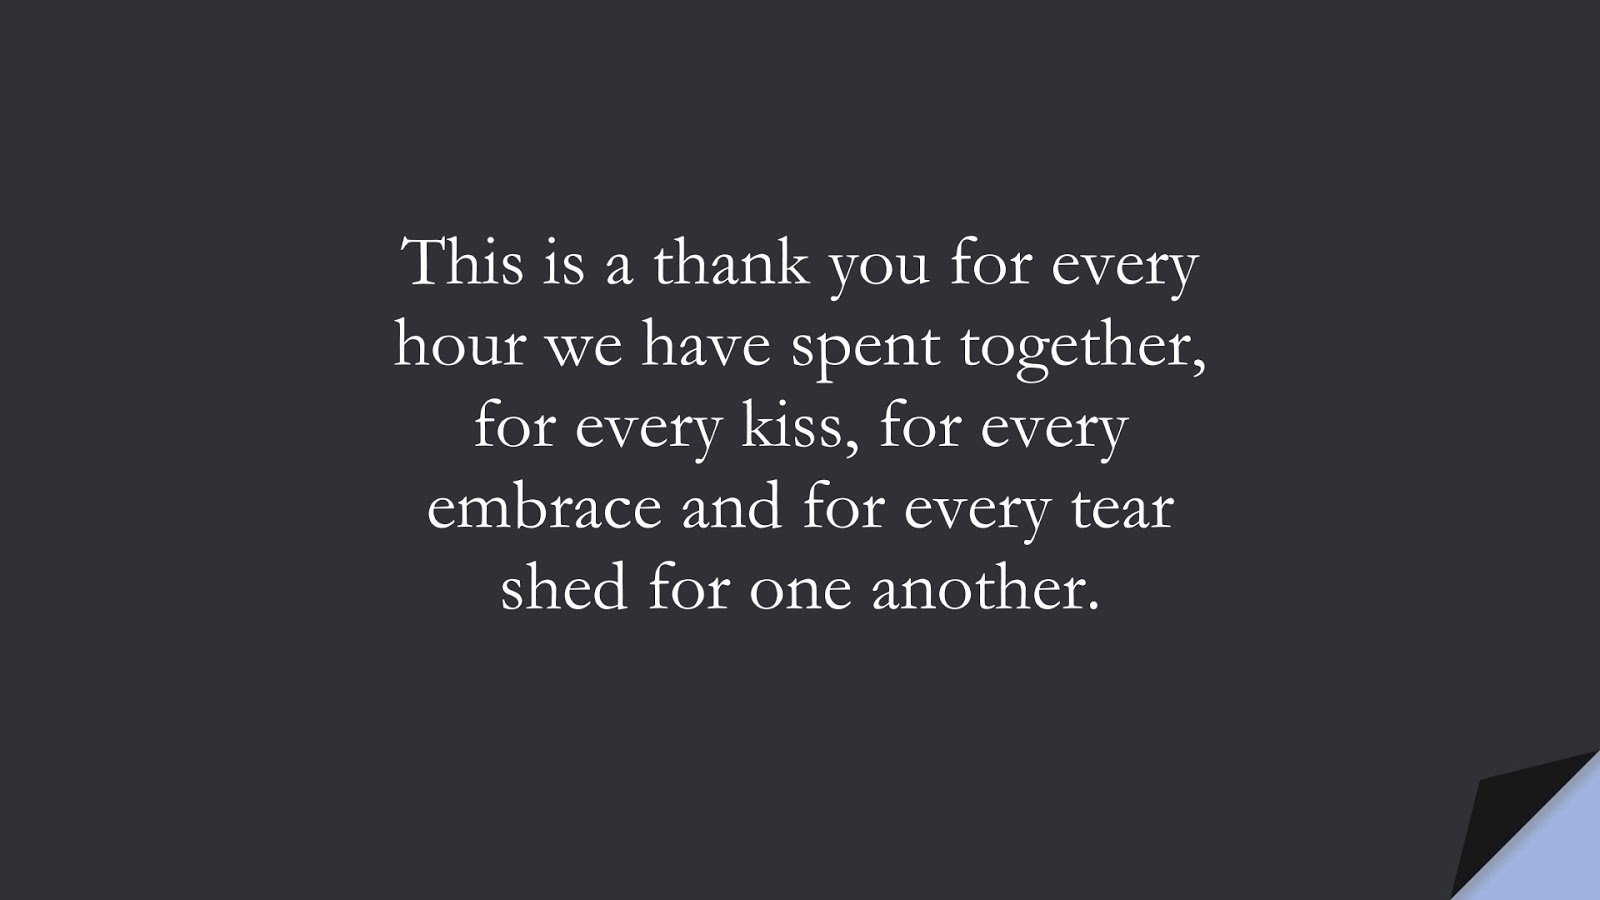 This is a thank you for every hour we have spent together, for every kiss, for every embrace and for every tear shed for one another.FALSE